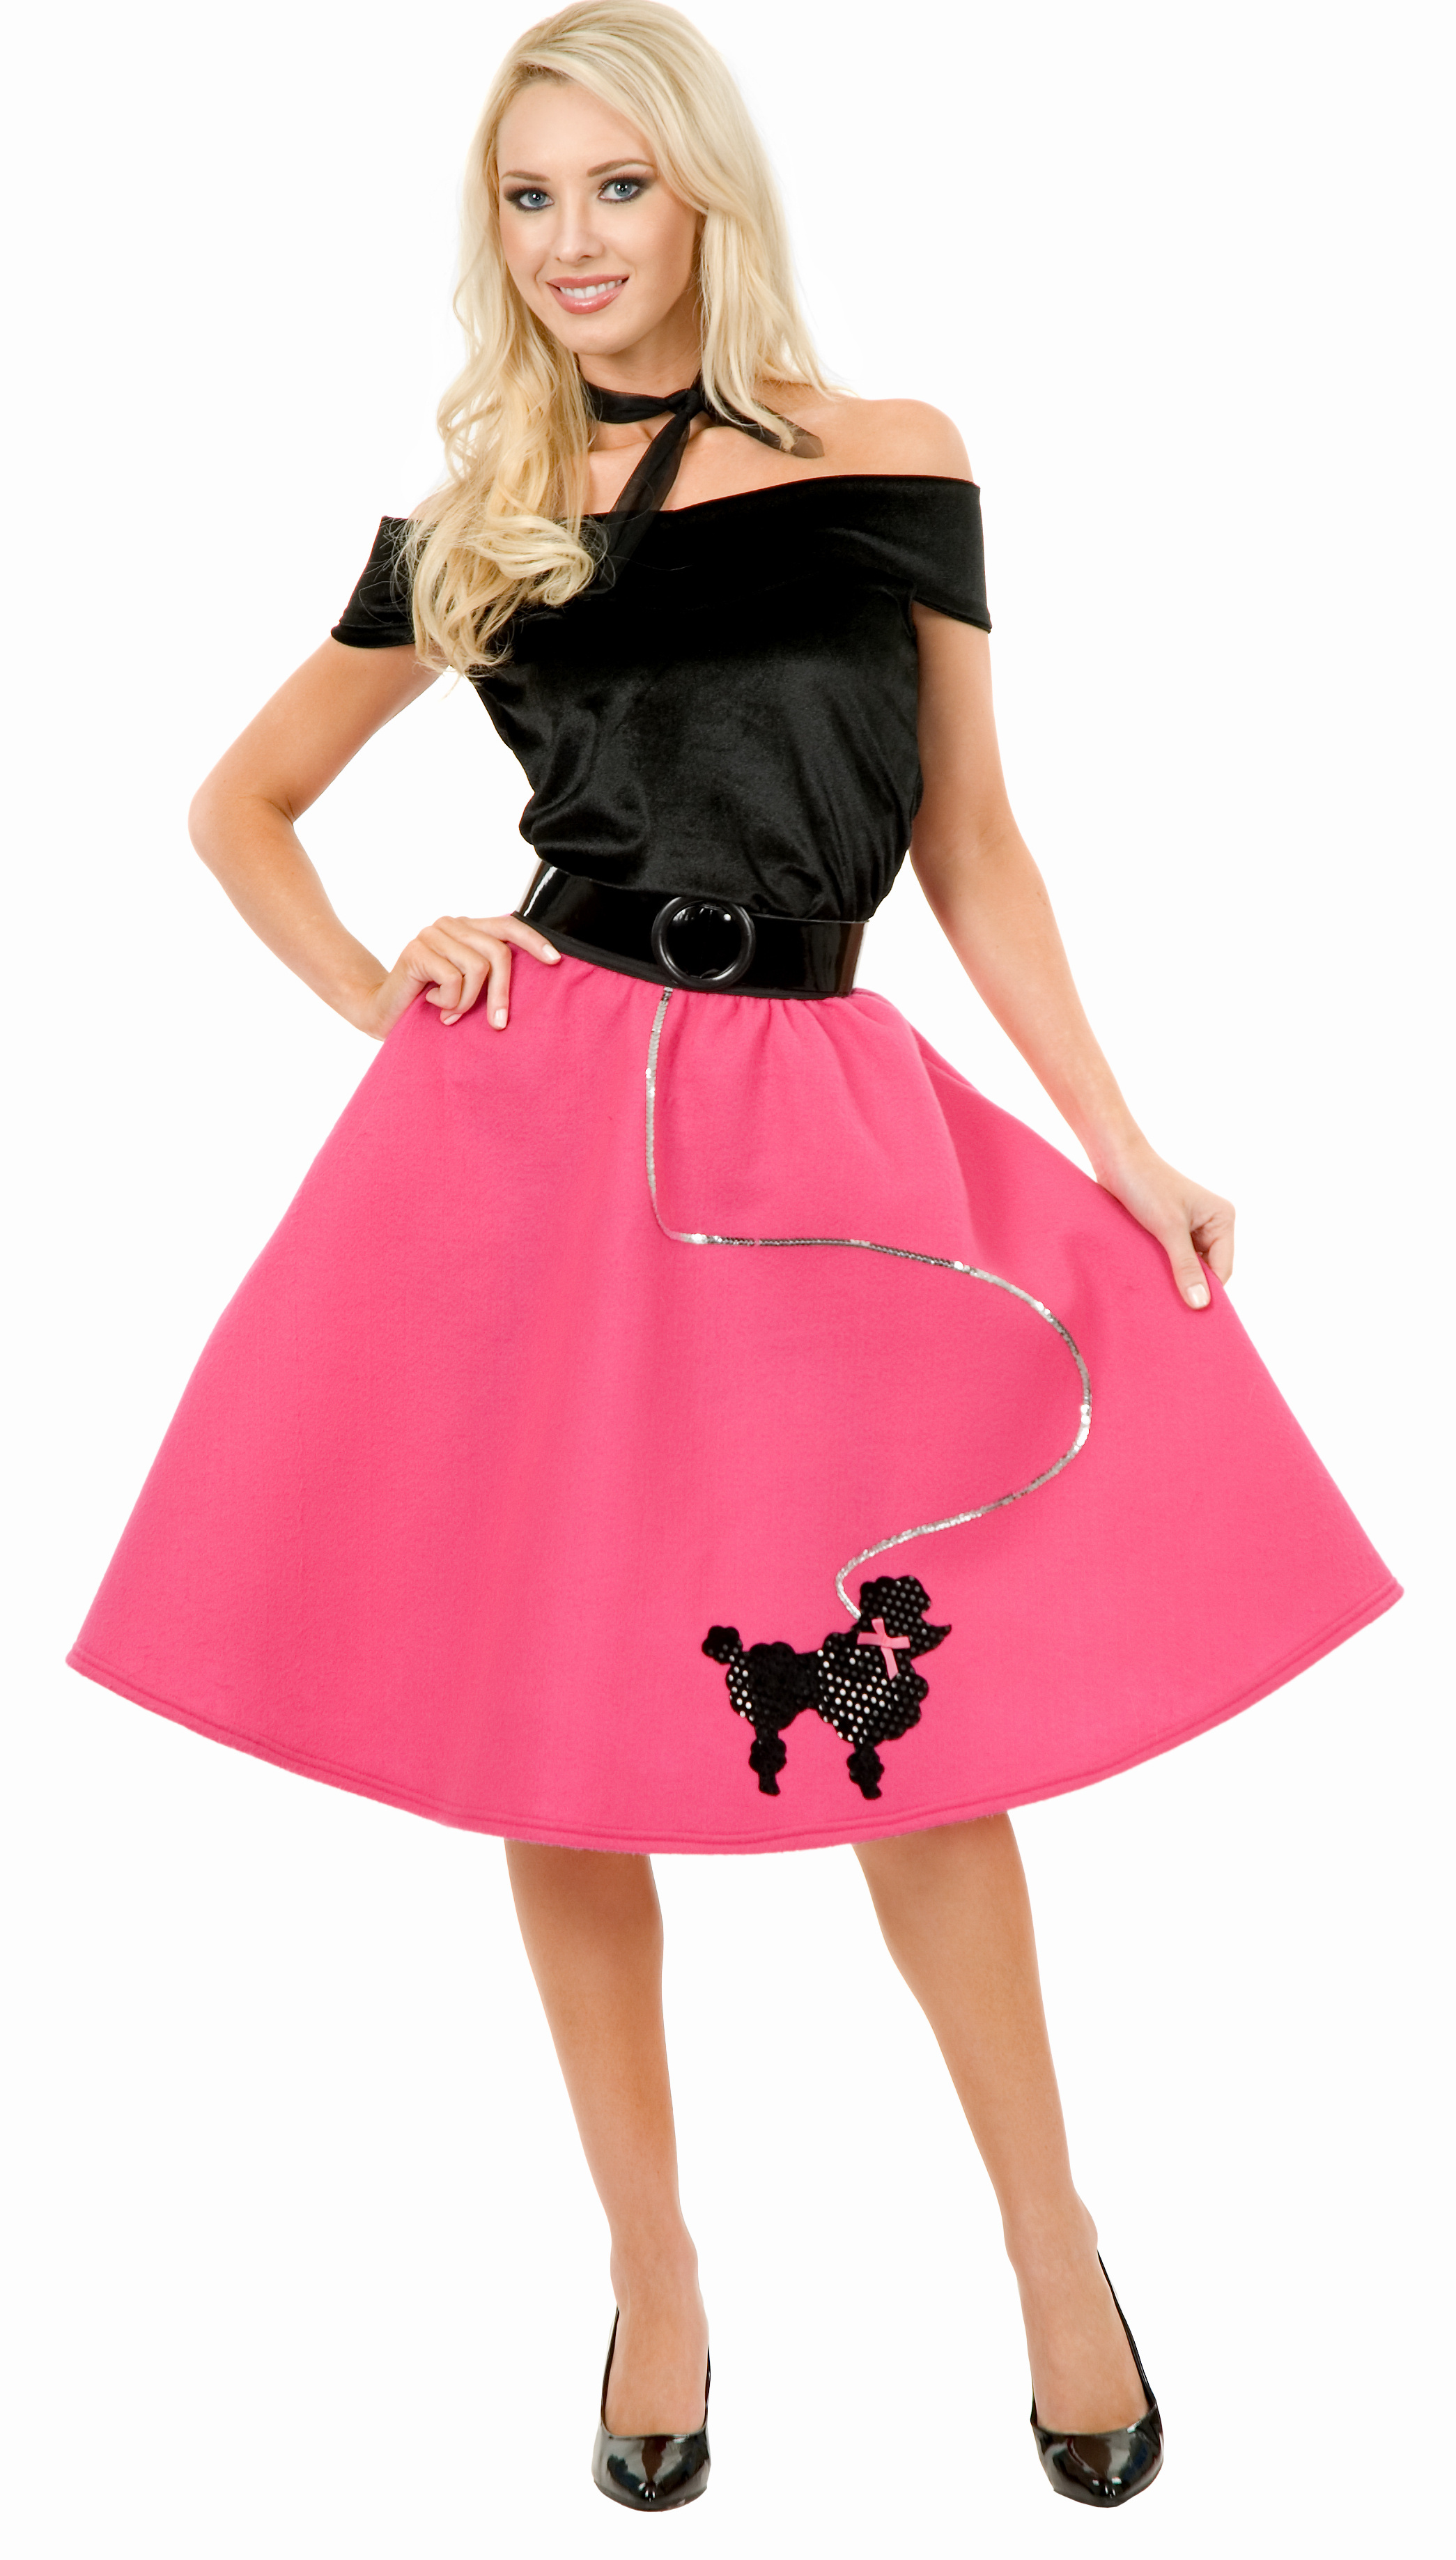 Home    50s Costumes    Poodle Skirt Costumes    Womens 50s Poodle